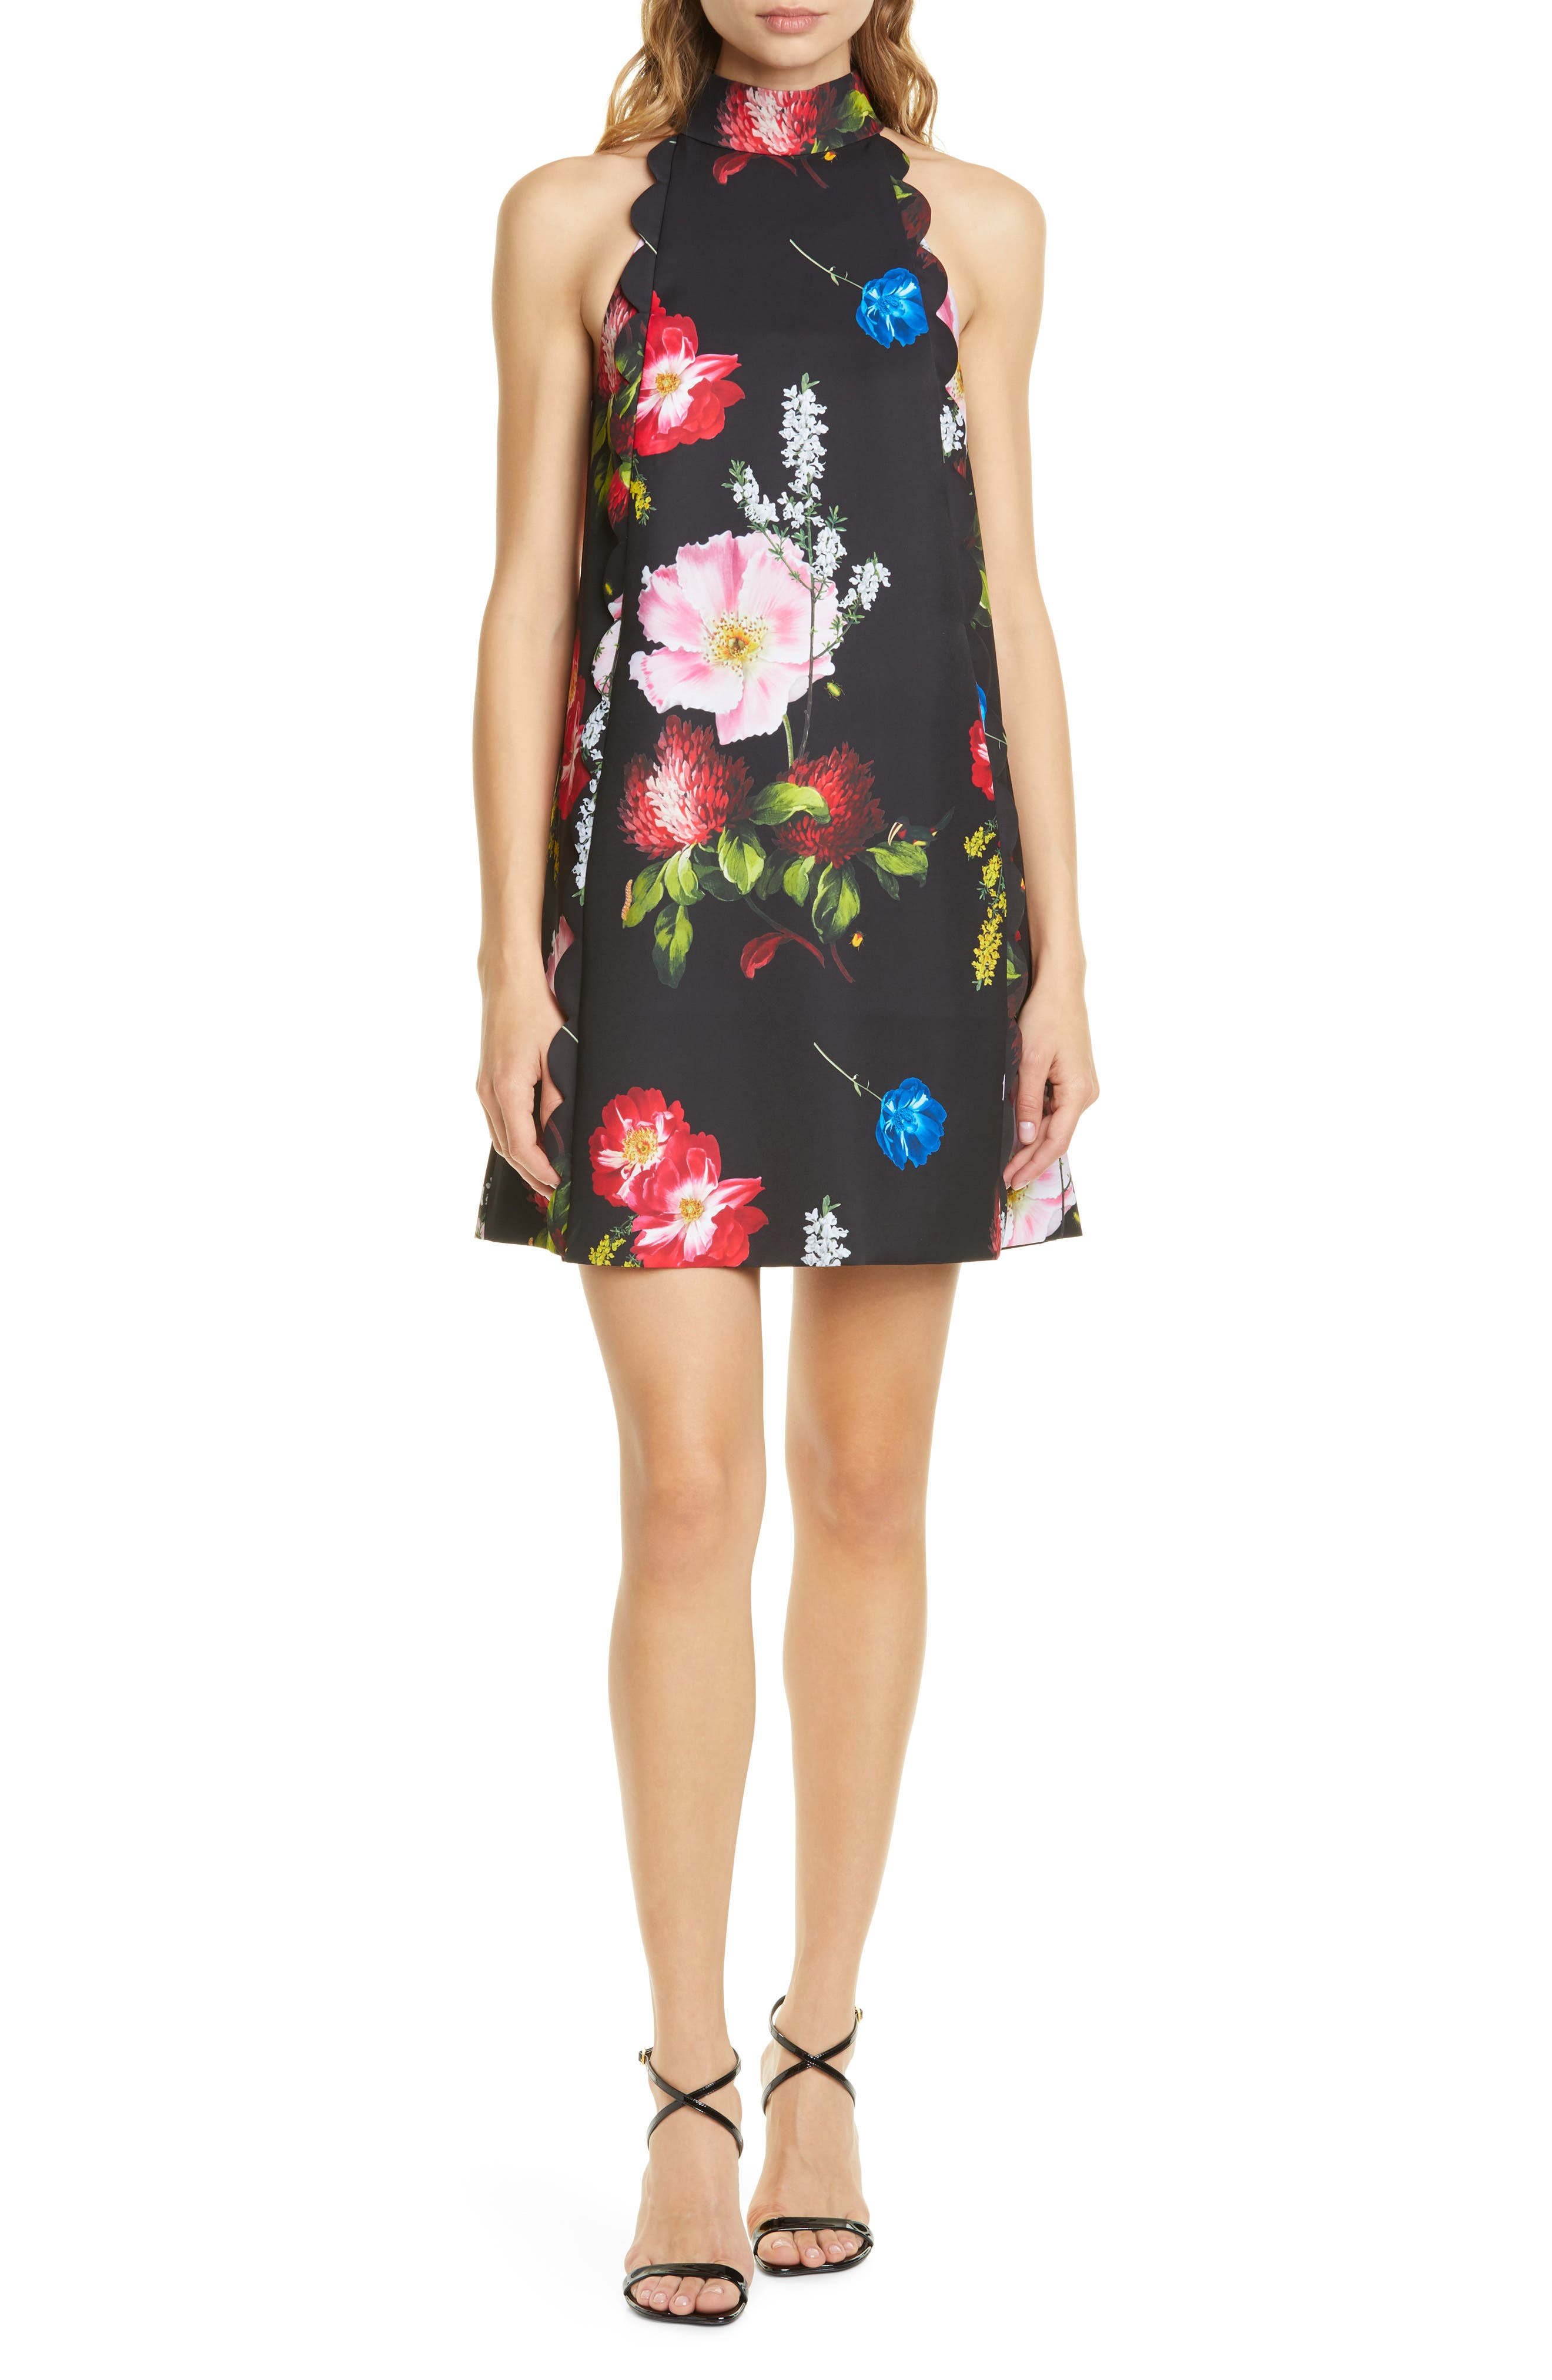 0e8b720bd Ted Baker London Berry Sundae Floral Scallop Shift Dress